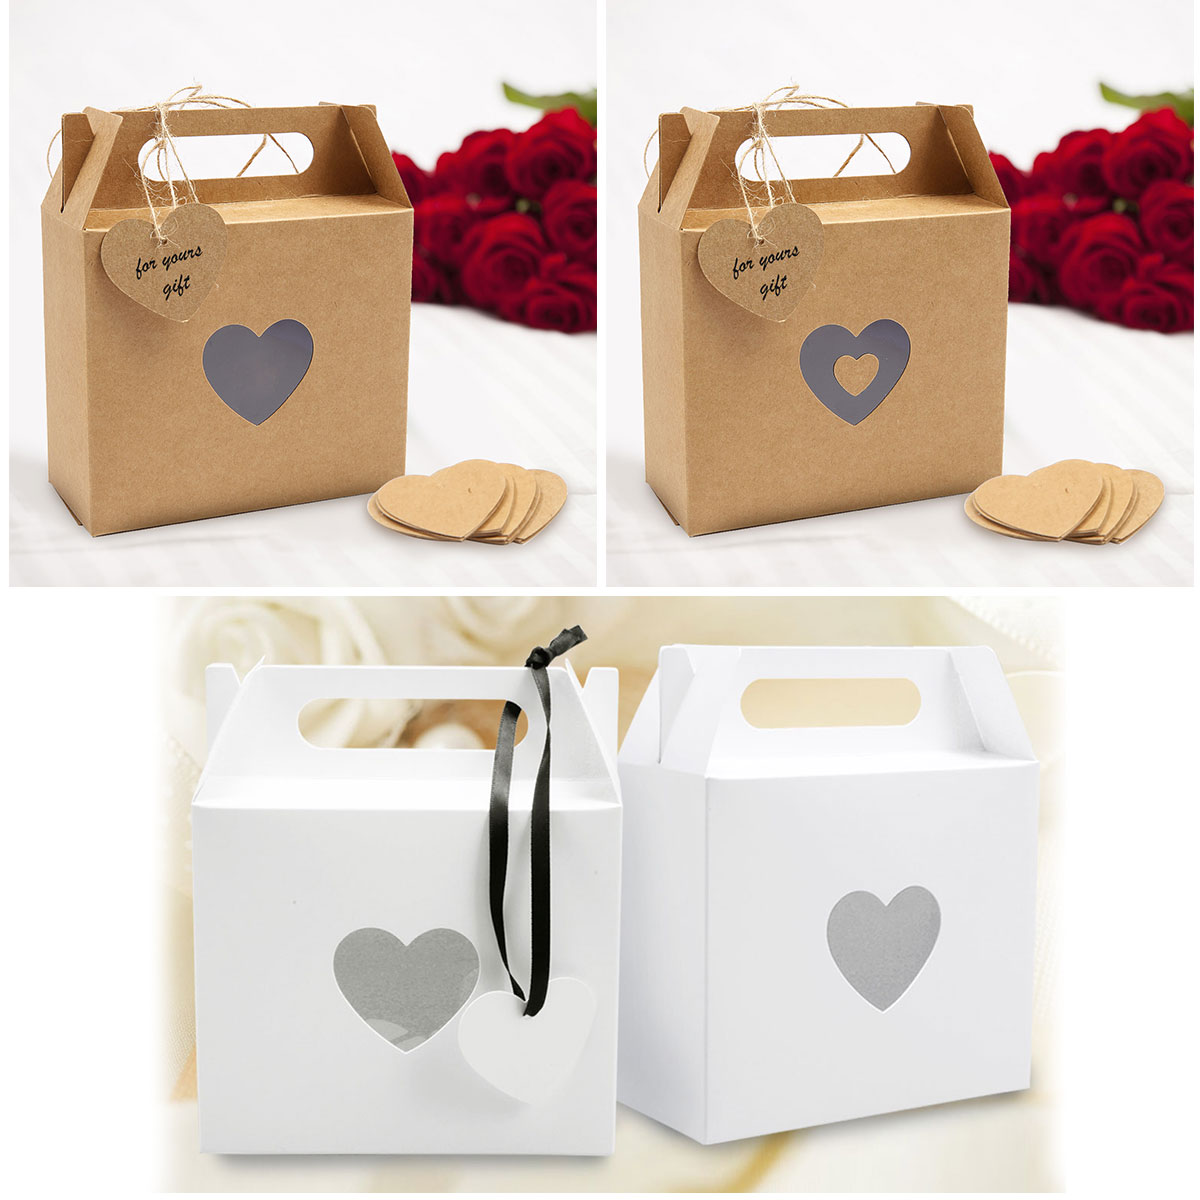 Details about  /50 Small White Paper Gift Bags 60 Free Stickers Wedding Favours Party bulk